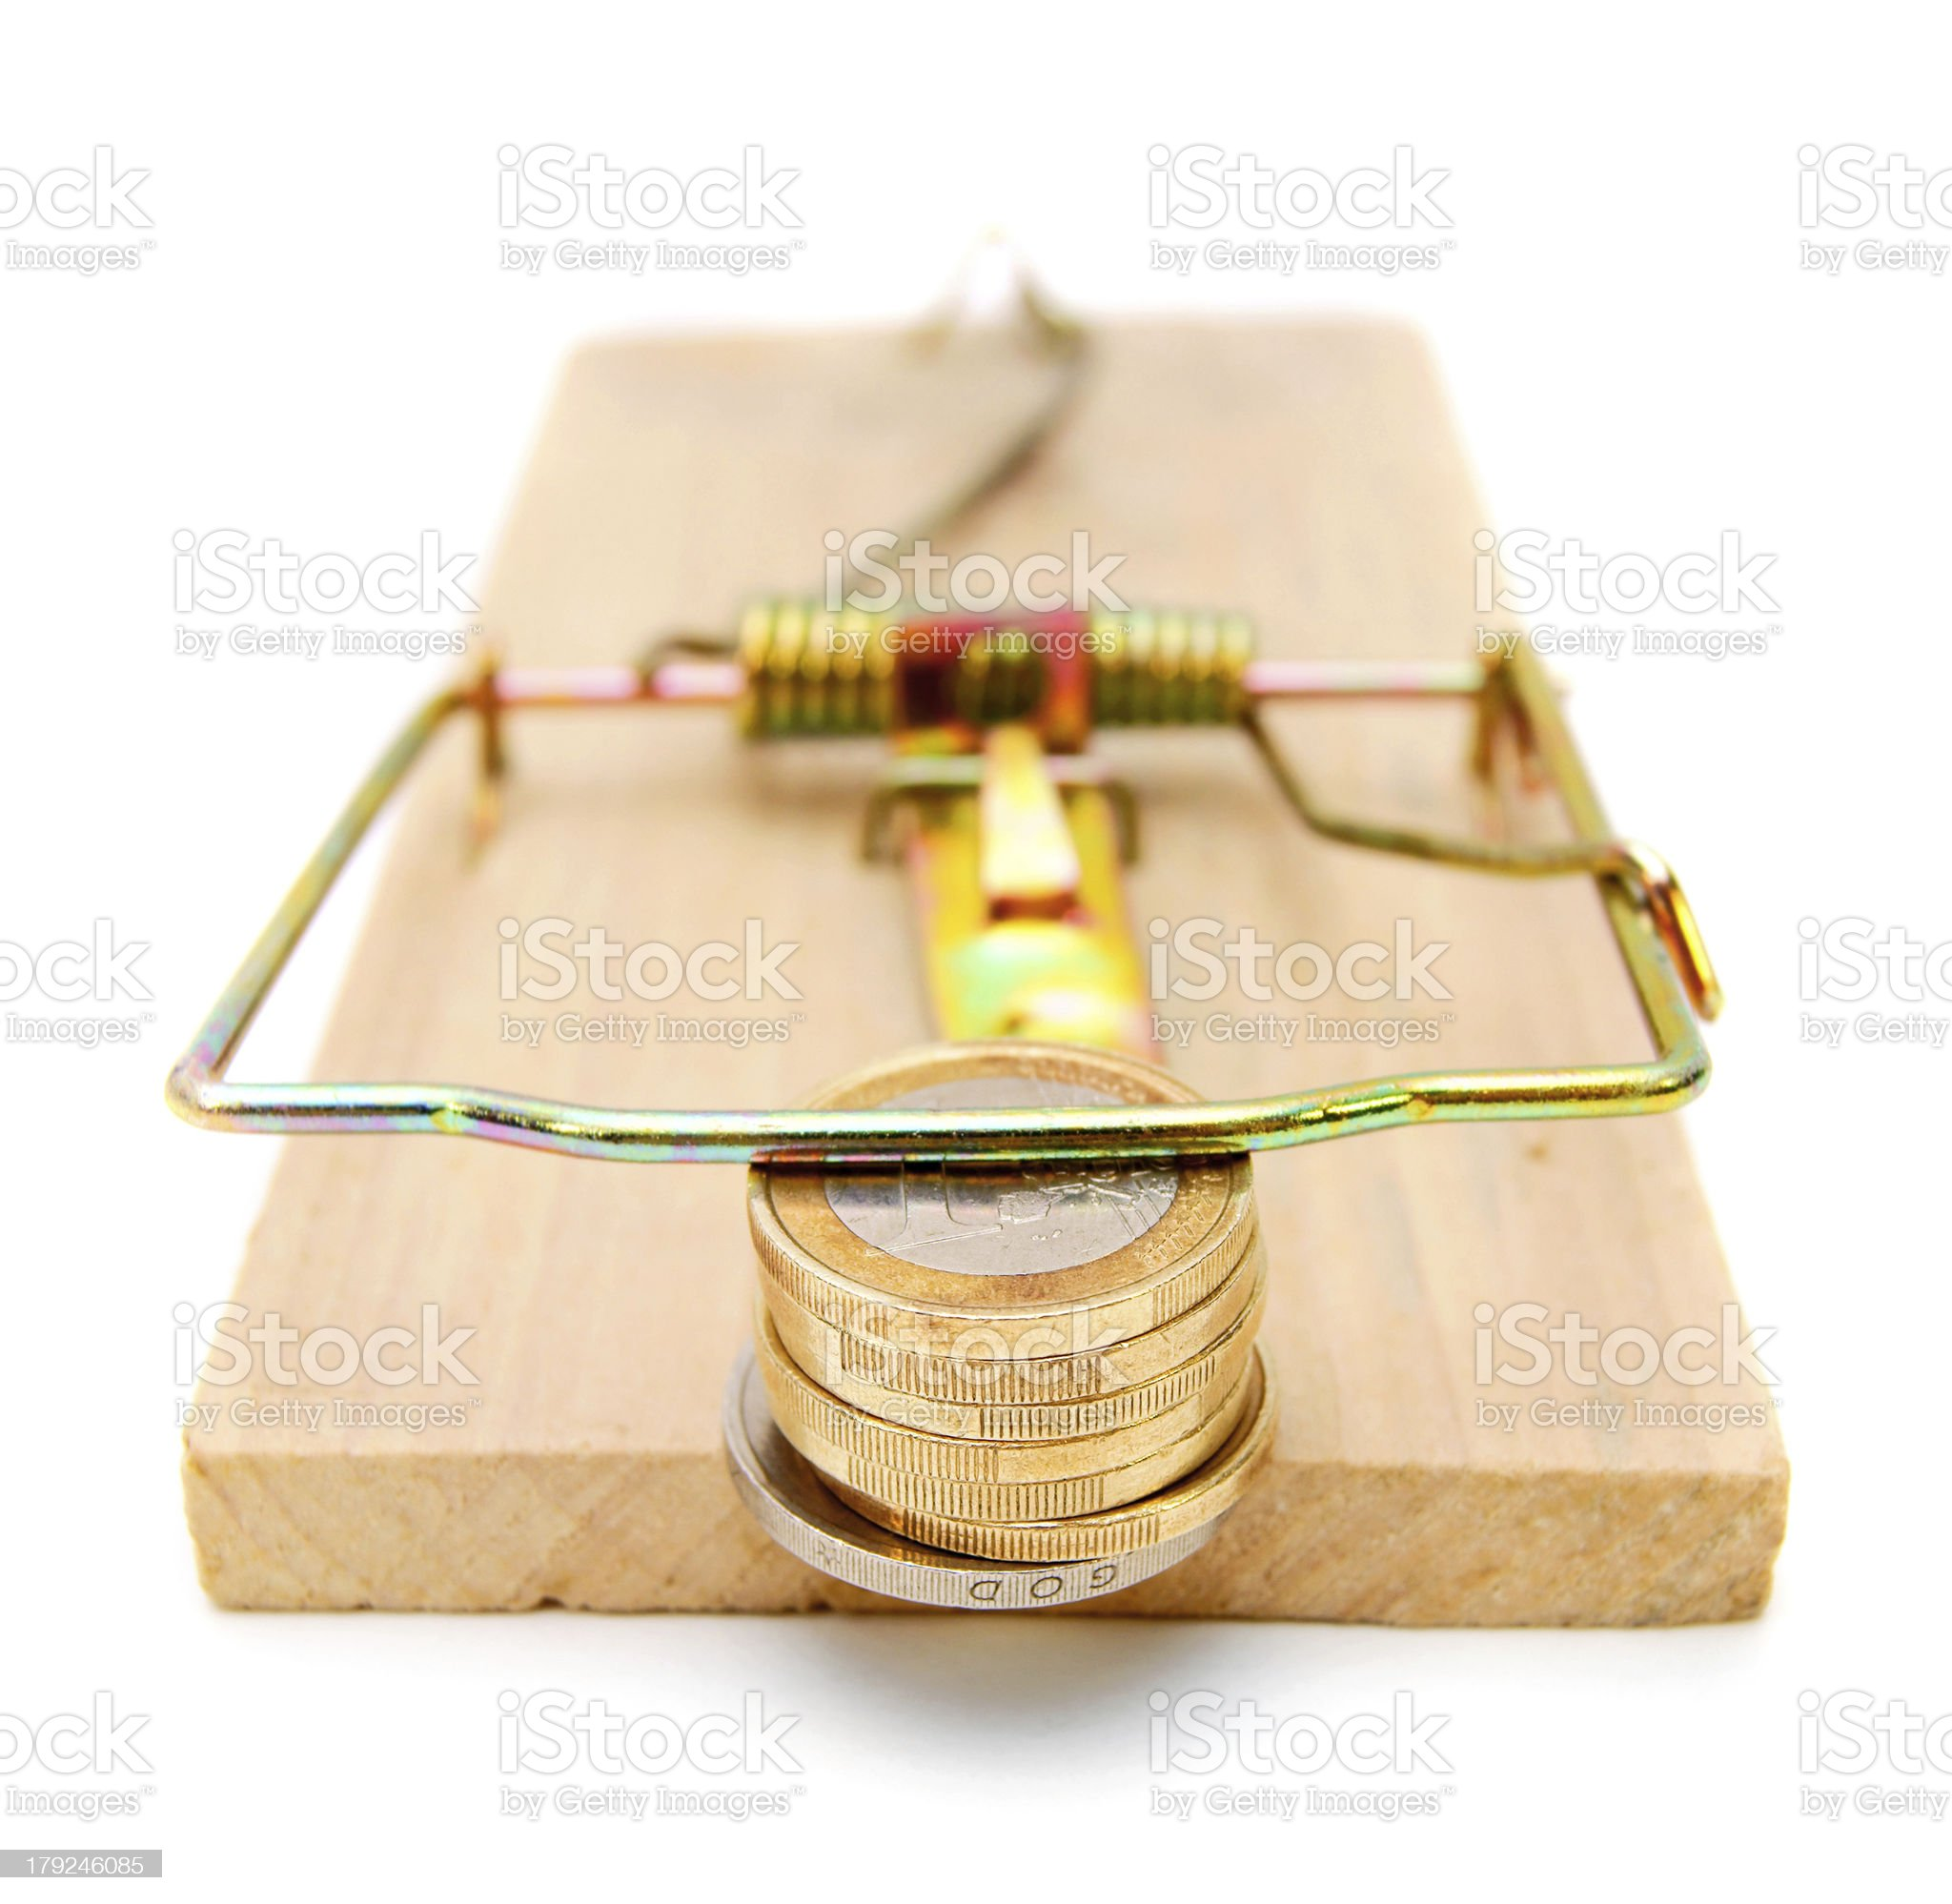 Coins in a mousetrap. royalty-free stock photo